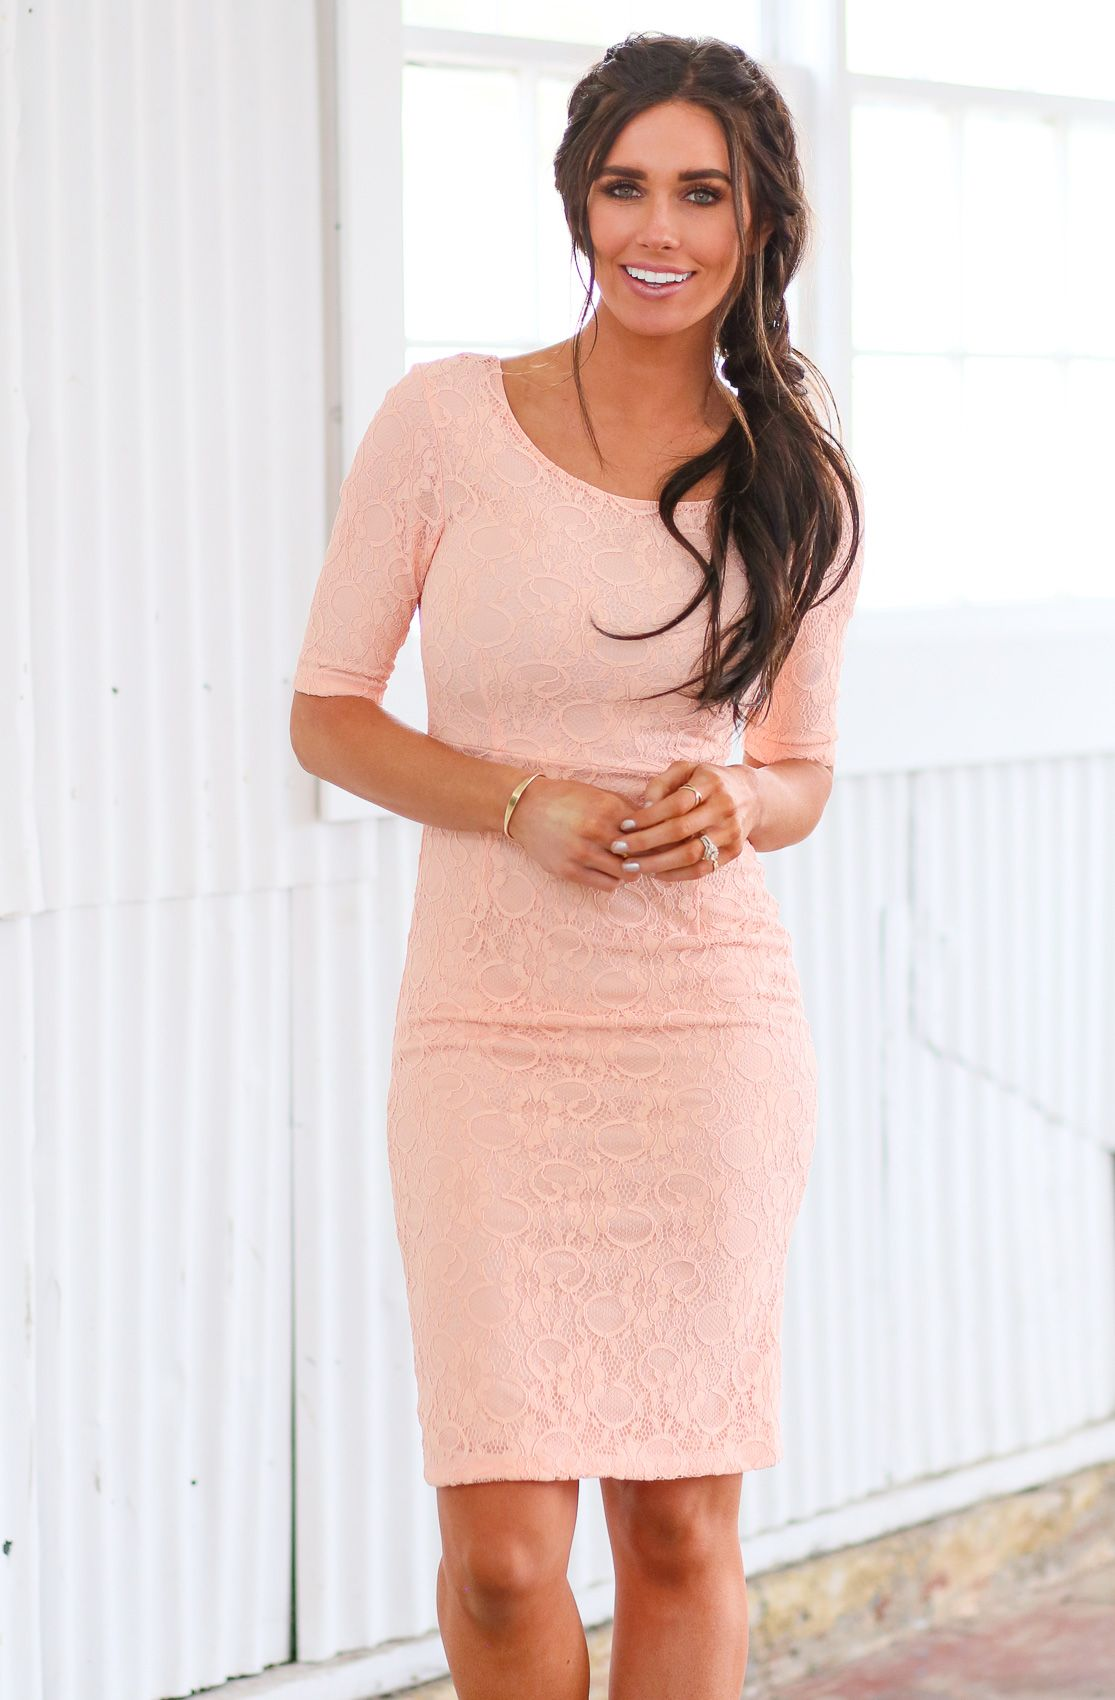 620d1c6cf6491 You'll love this chic, stylish lace modest pencil dress. Perfect for semi- formal events & as a Modest Bridesmaid Dress! June Modest Dress in Peach  Lace, ...